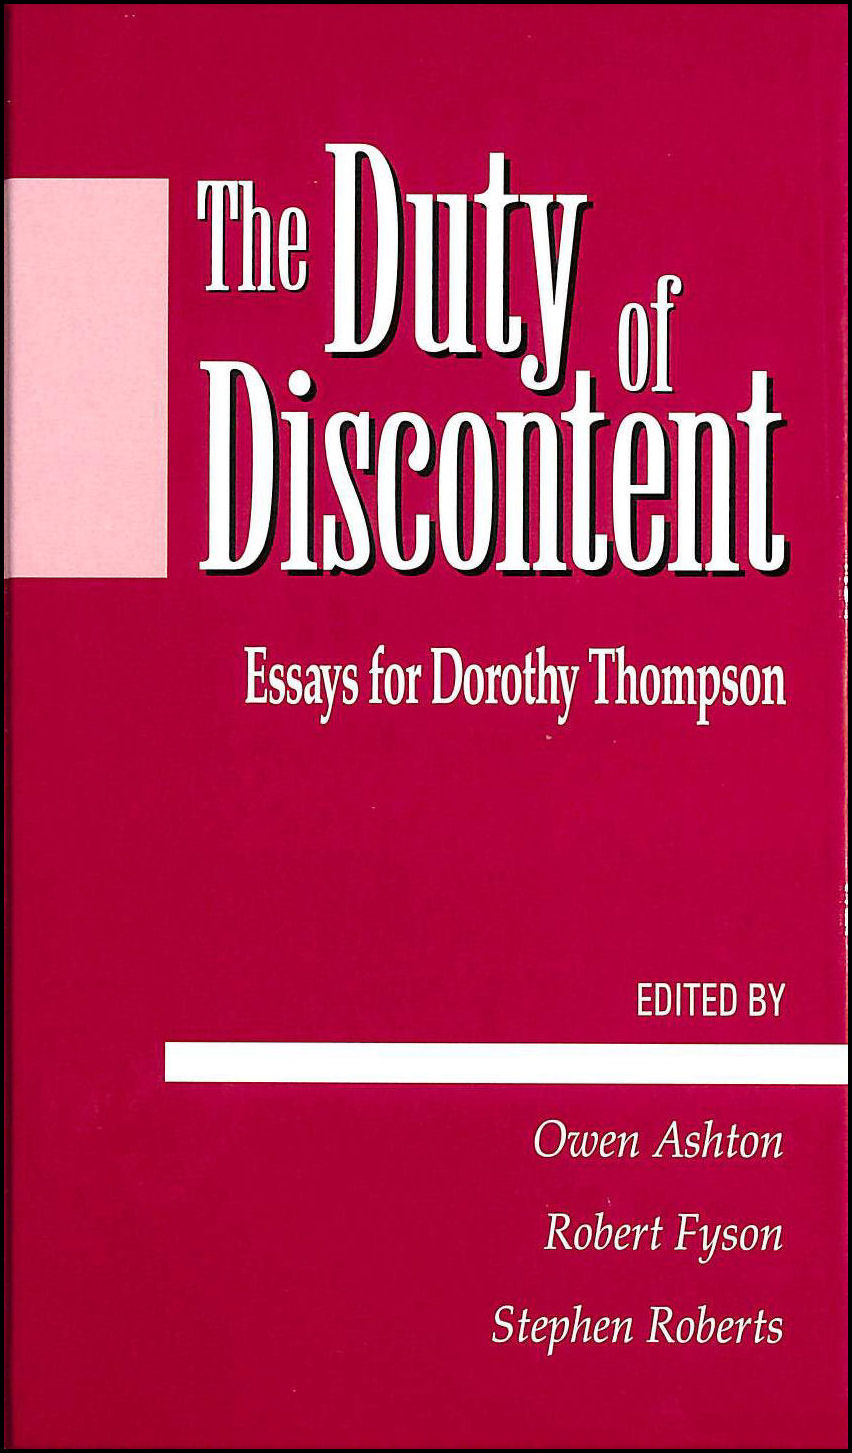 Image for The Duty of Discontent: Essays for Dorothy Thompson